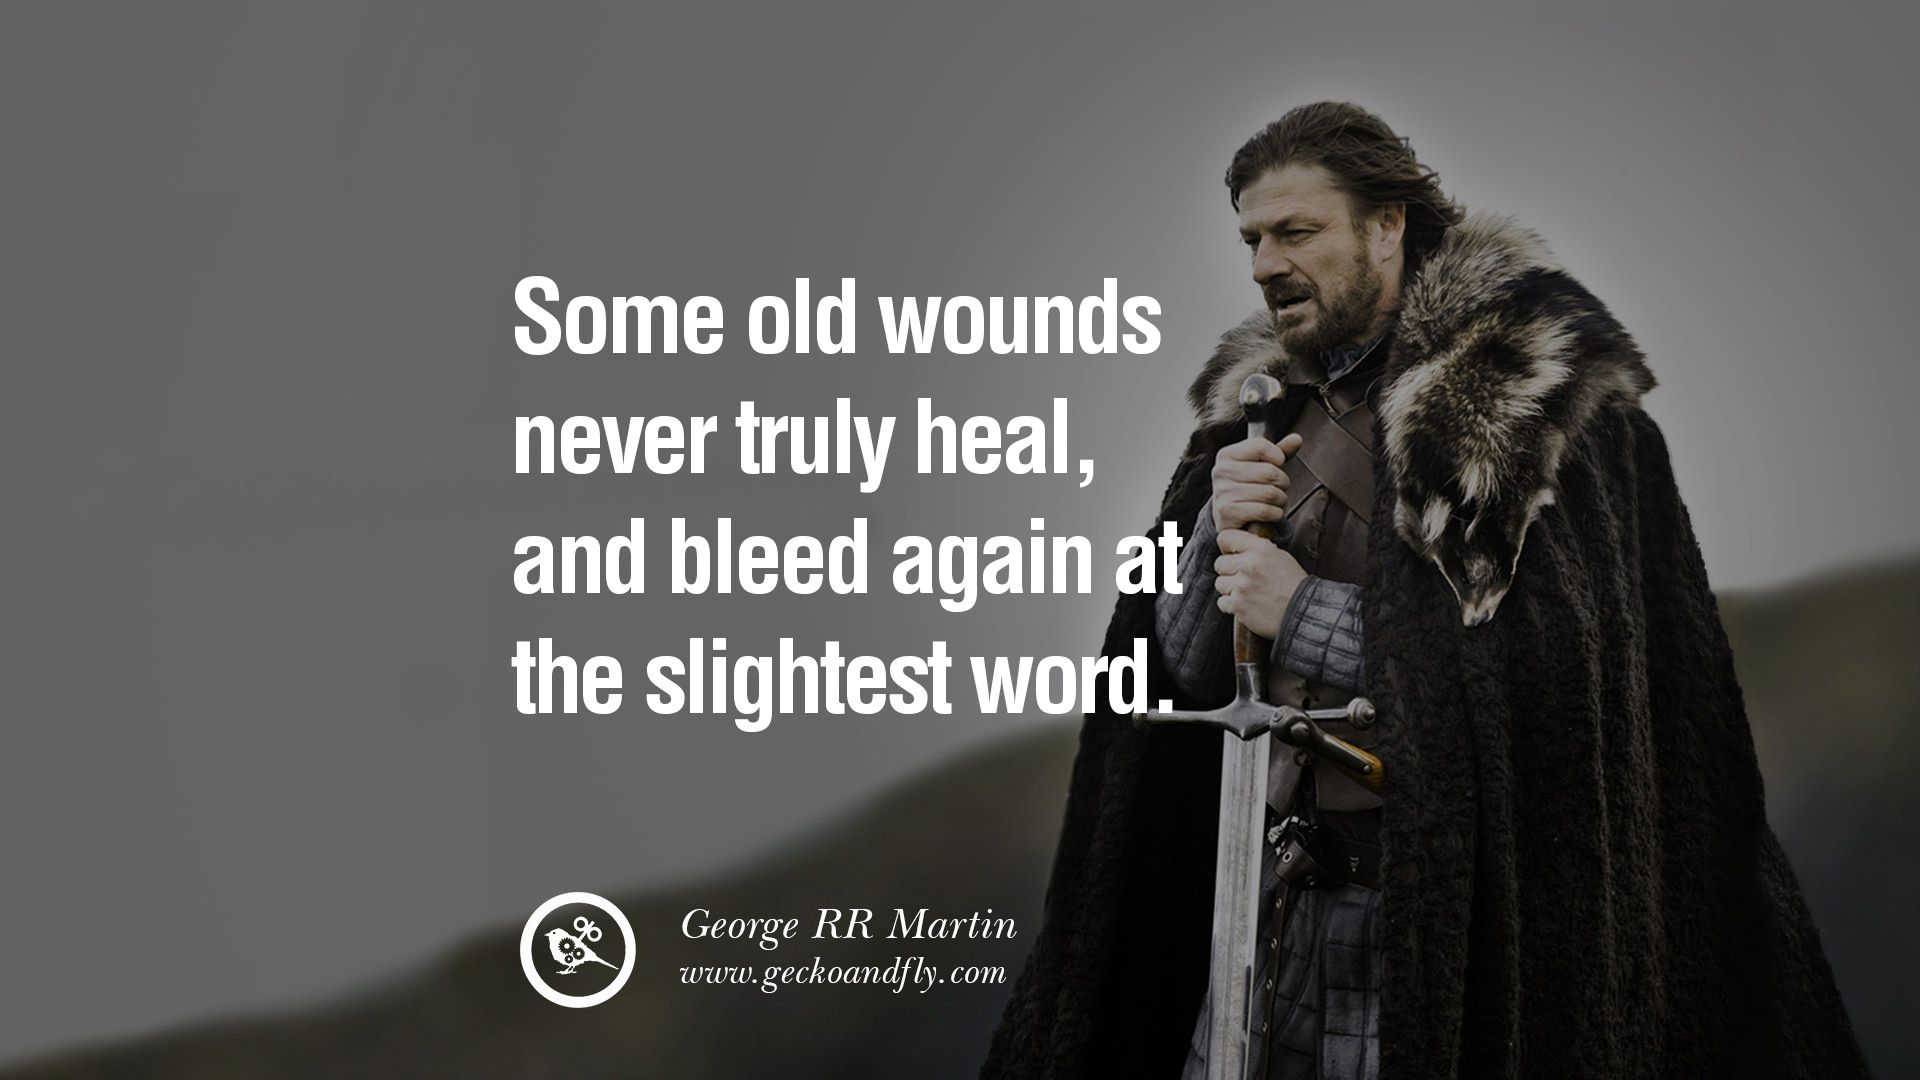 Image result for game of thrones: Some old wounds never truly heal and bleed again at the slightest word.